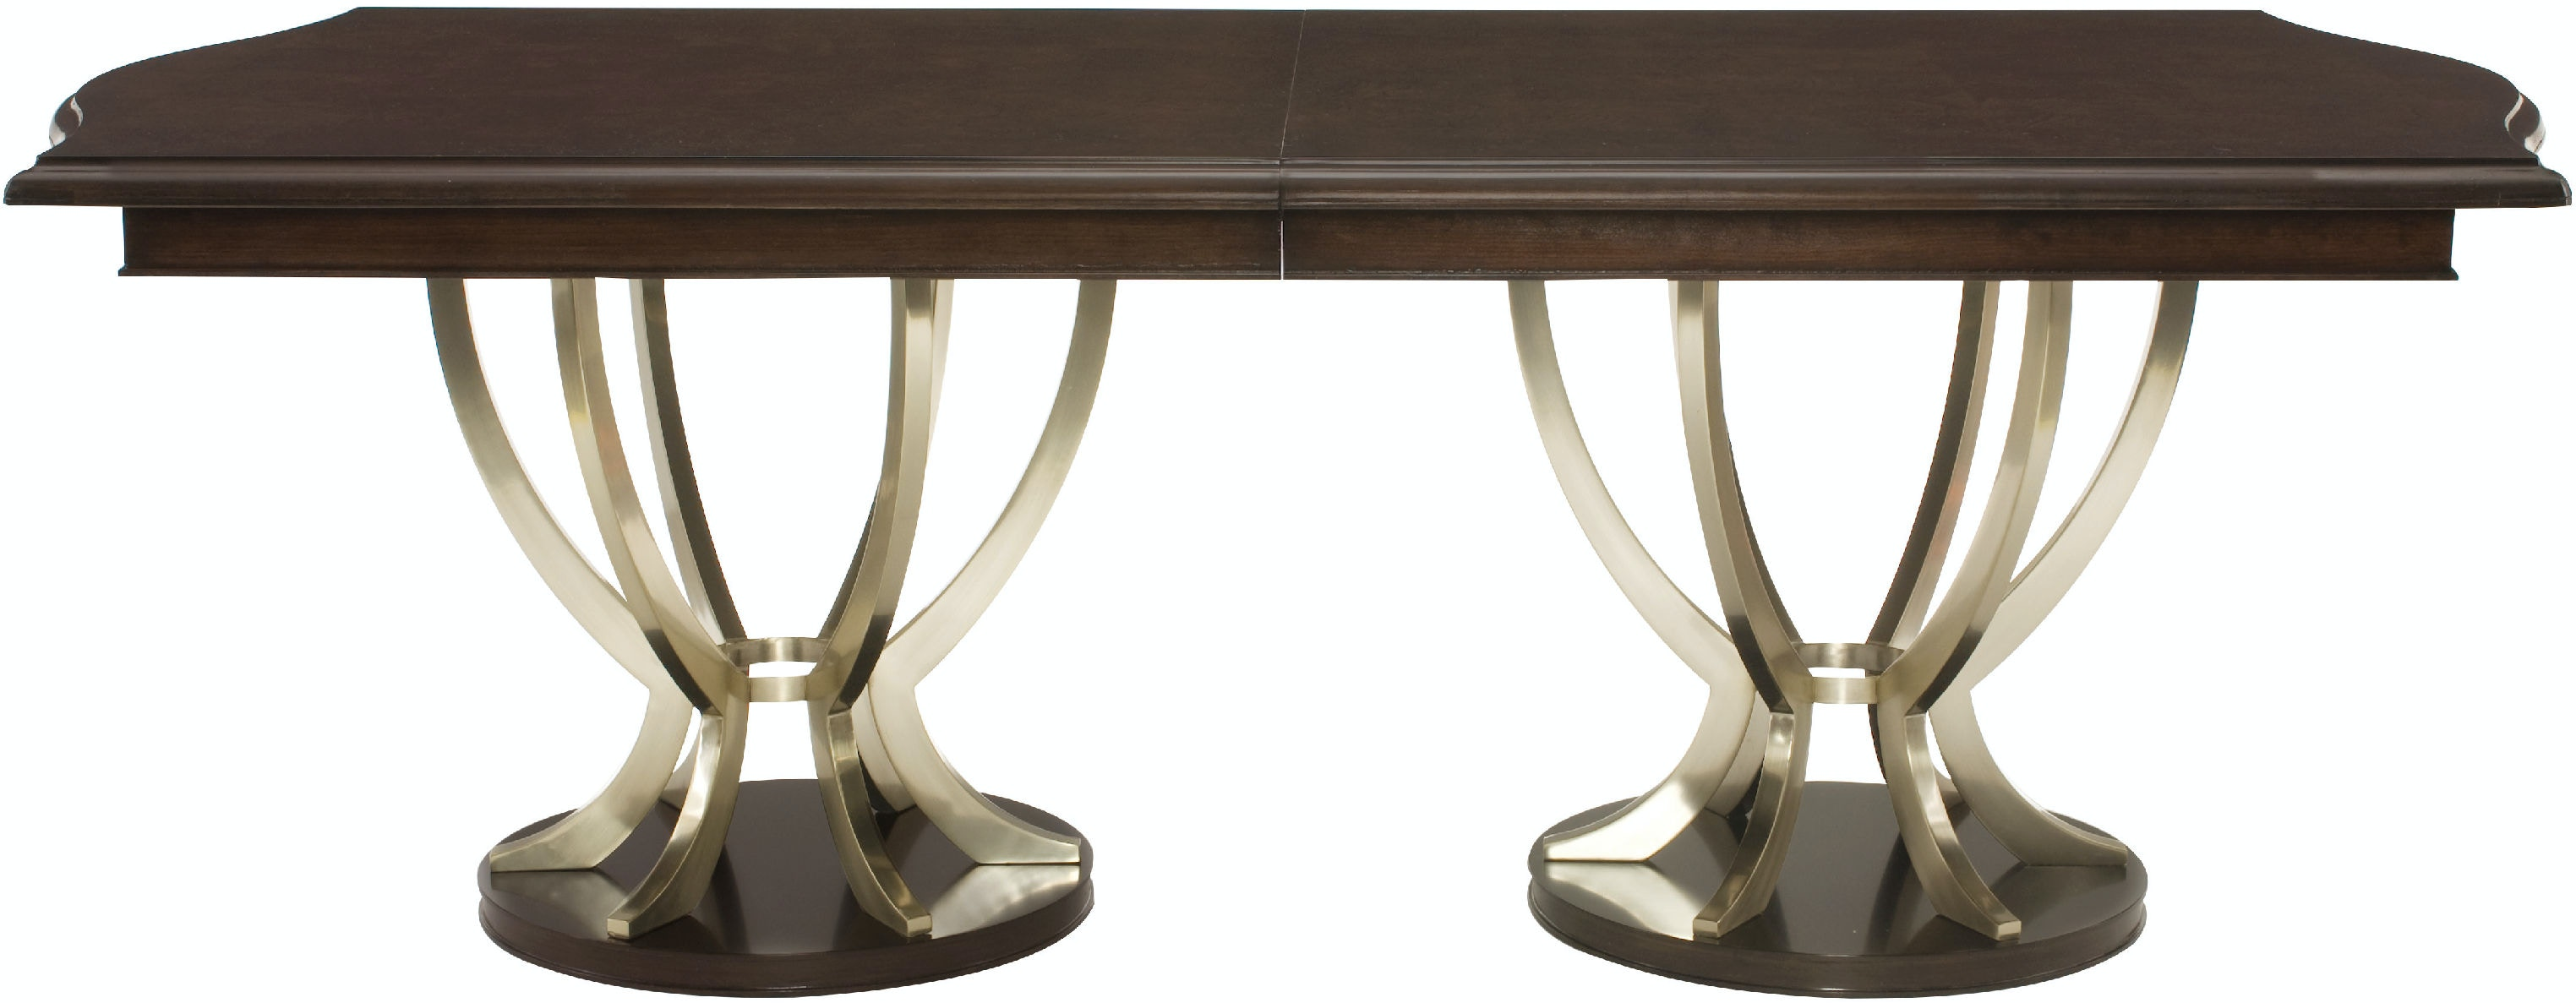 oval pedestal dining table plans double base round with butterfly leaf